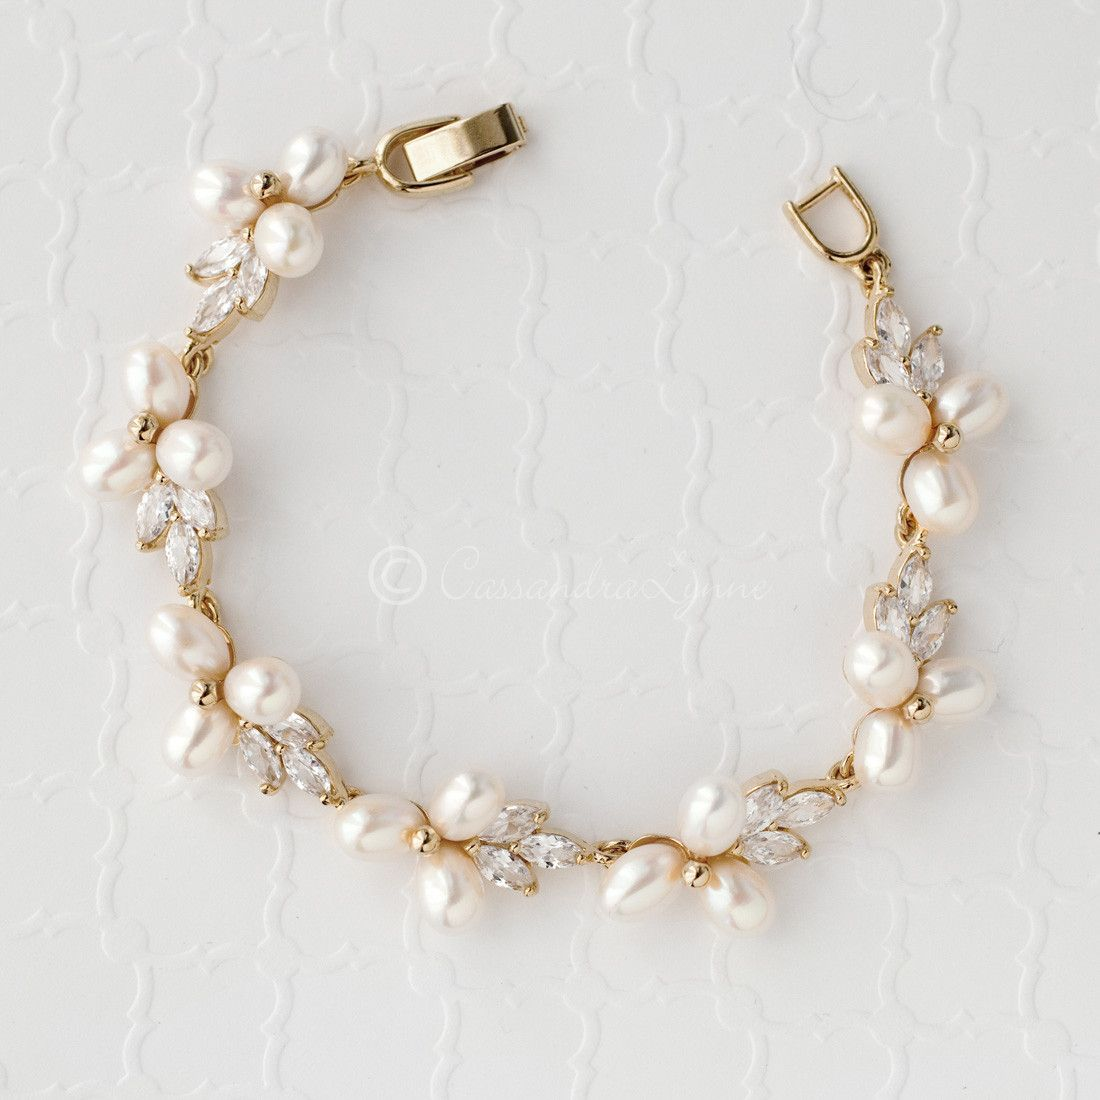 Wedding accessories pearls flowers pearls - Wedding Bracelet With Oval Pearl And Cz Flowers